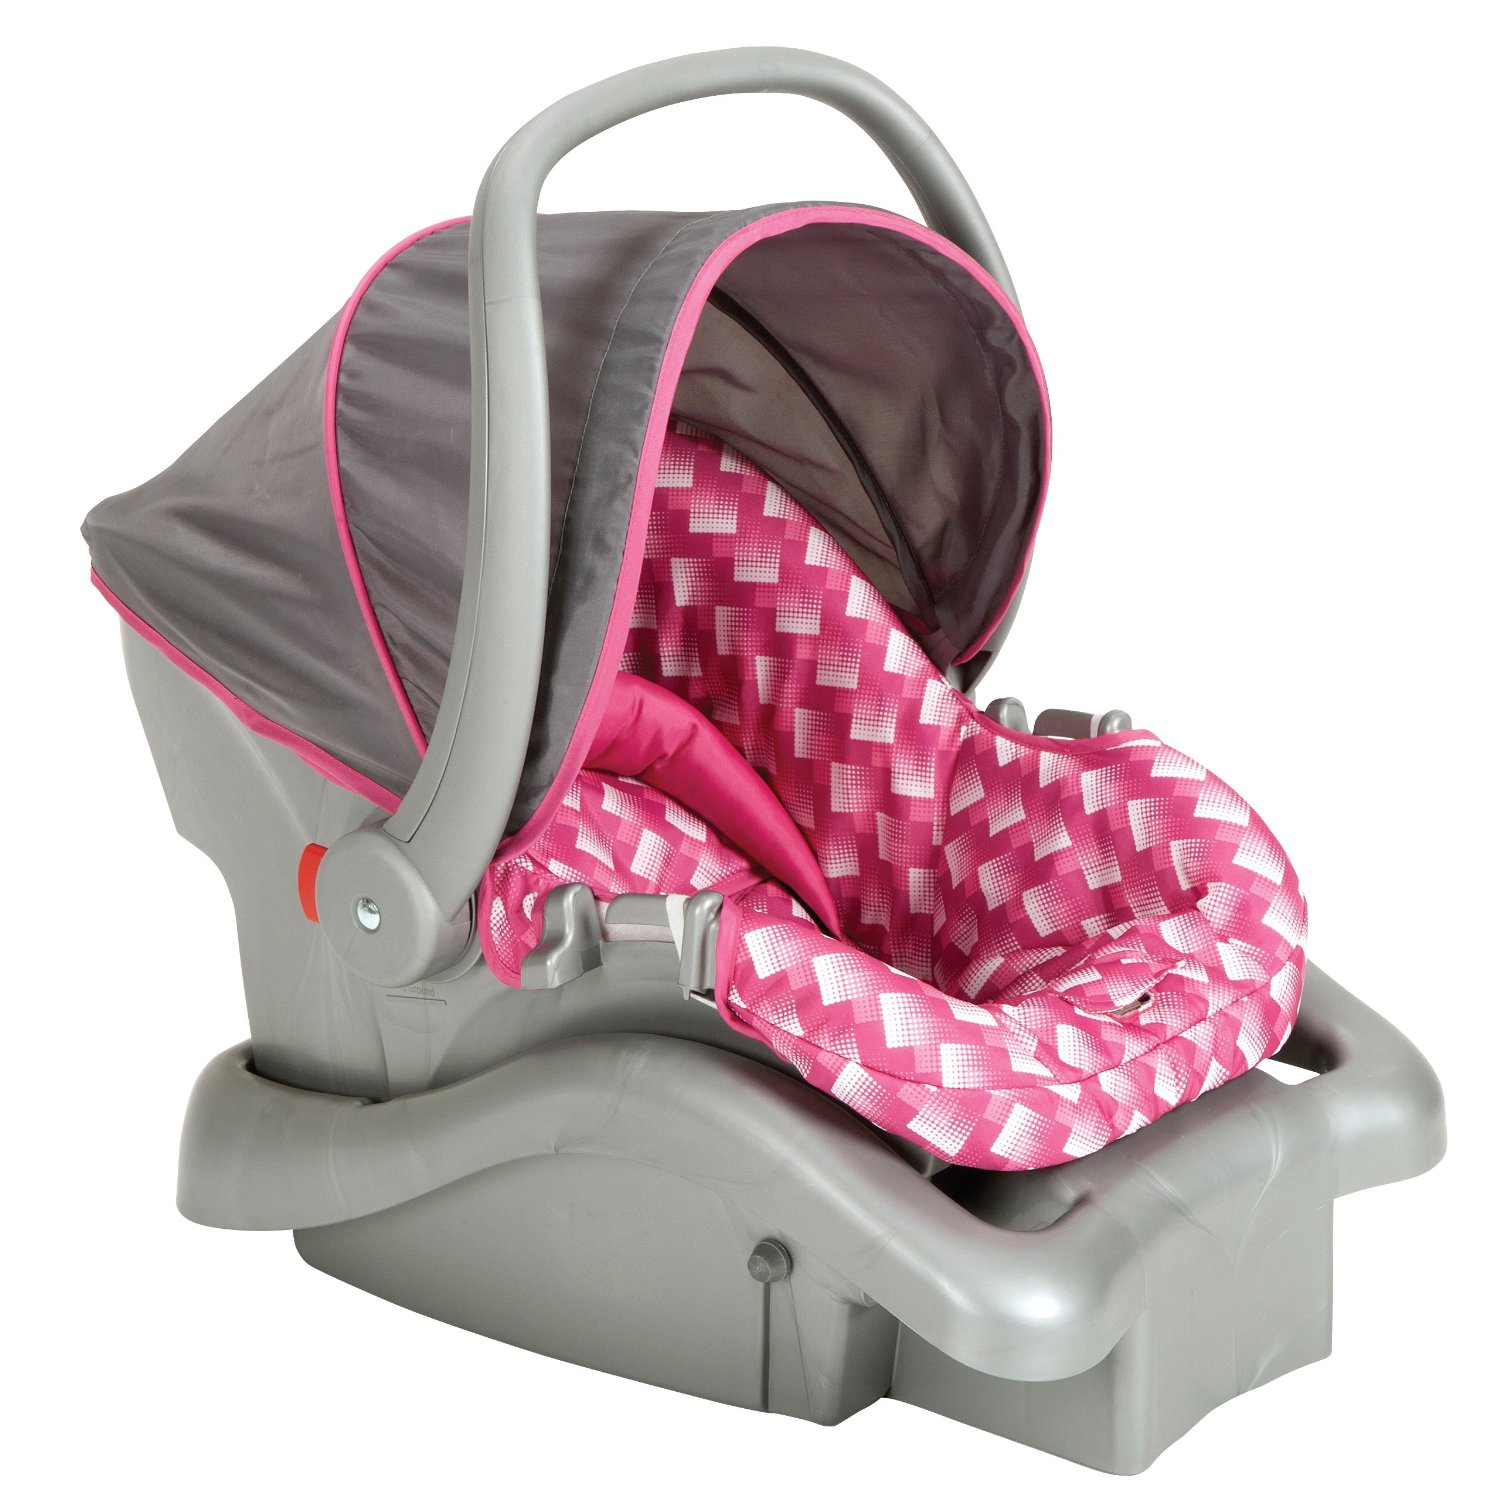 Baby Car Seats additionally Safety 1st Amble Quad Travel System With Onboard 22 Infant Car Seat Polynesian further MLM 550477836 Carreola Y Portabebe Ninaviaje  bo  JM additionally Rond Eettafel together with Baby Stroller Car Seat  bo 169 High Reviews. on car seat stroller combo walmart